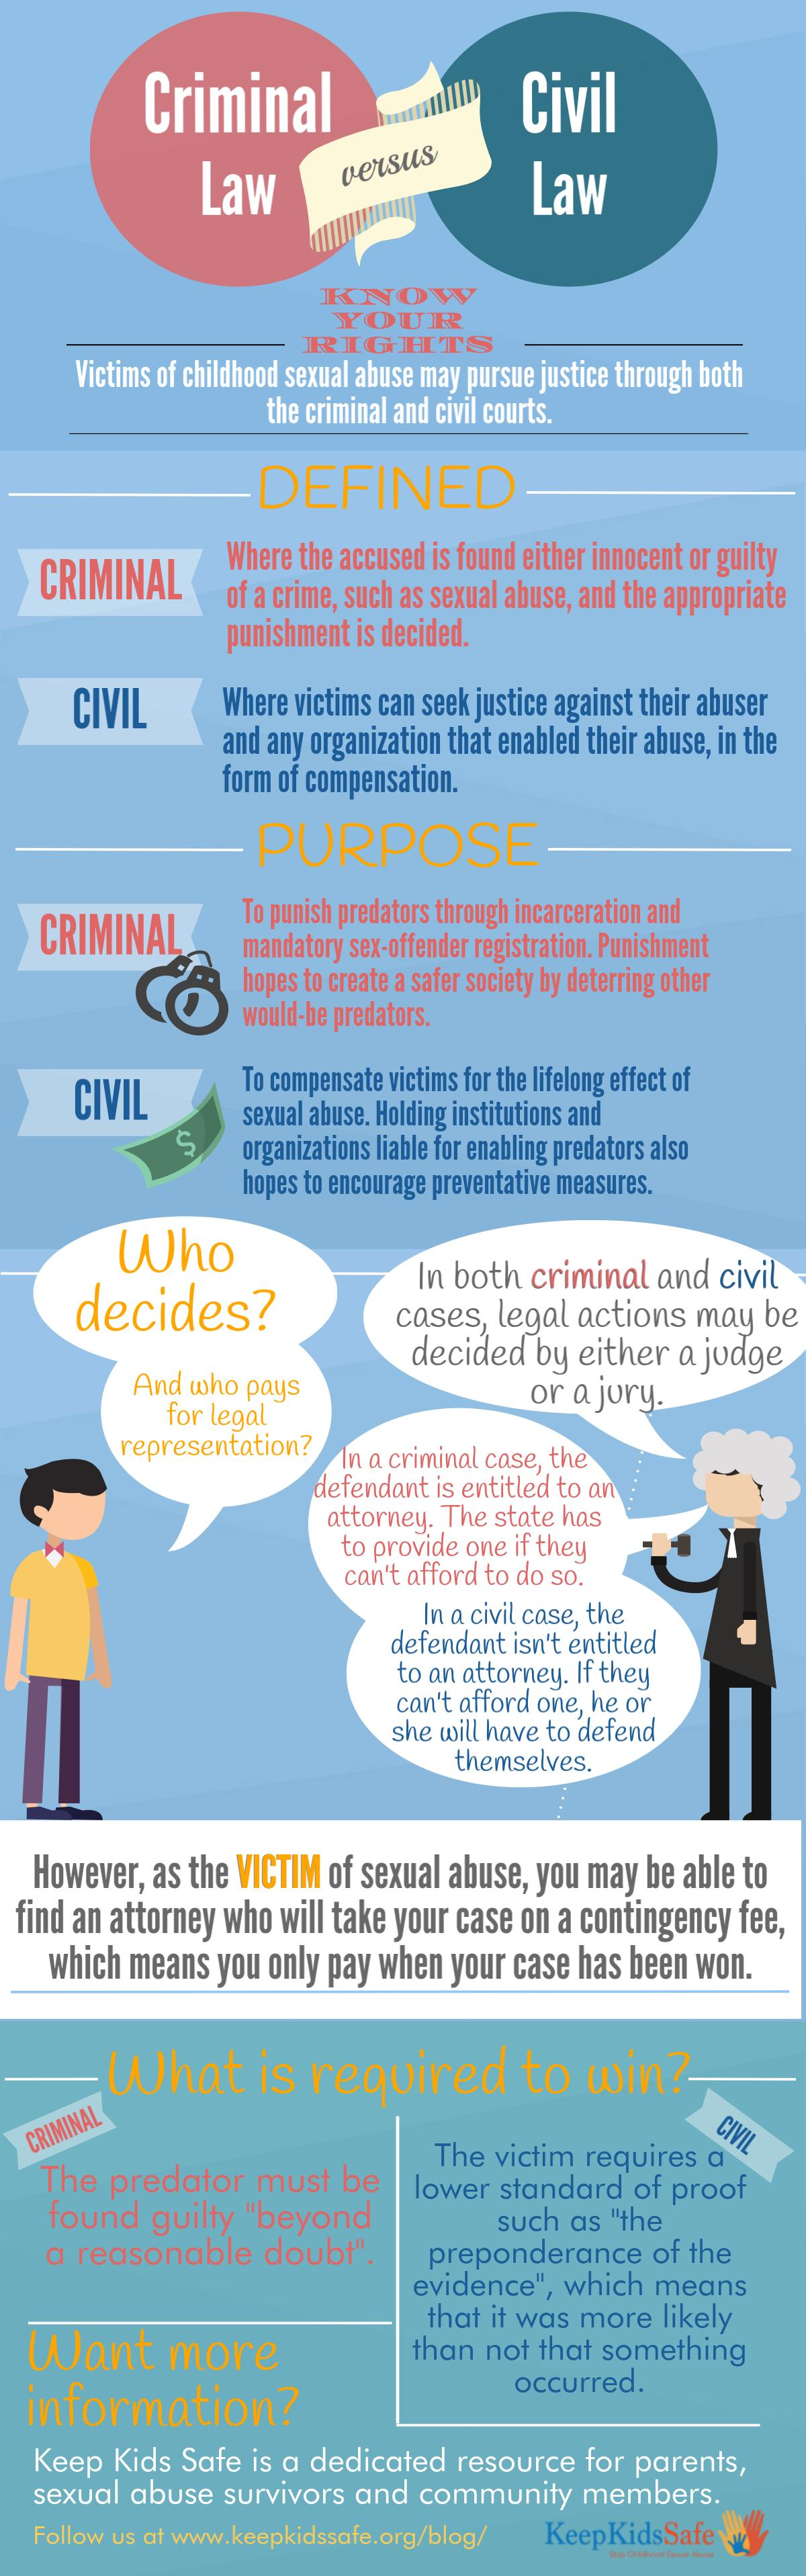 Infographic Criminal versus Civil law